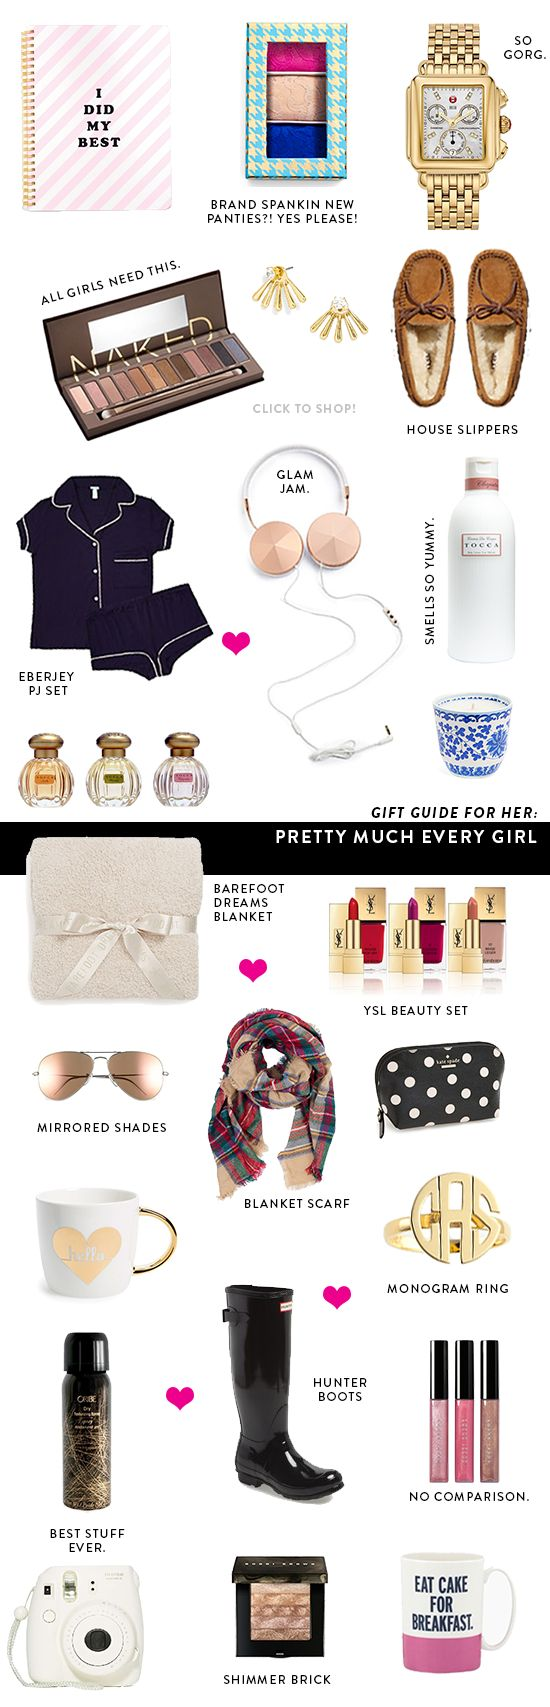 Xmas Gift Ideas For Her 2016 Part - 30: Cozy Treat Filled Slippers By Pretty Providence And Other Great Gift Ideas  | Want...Need...Love! | Pinterest | Cozy, Gift And Secret Santa